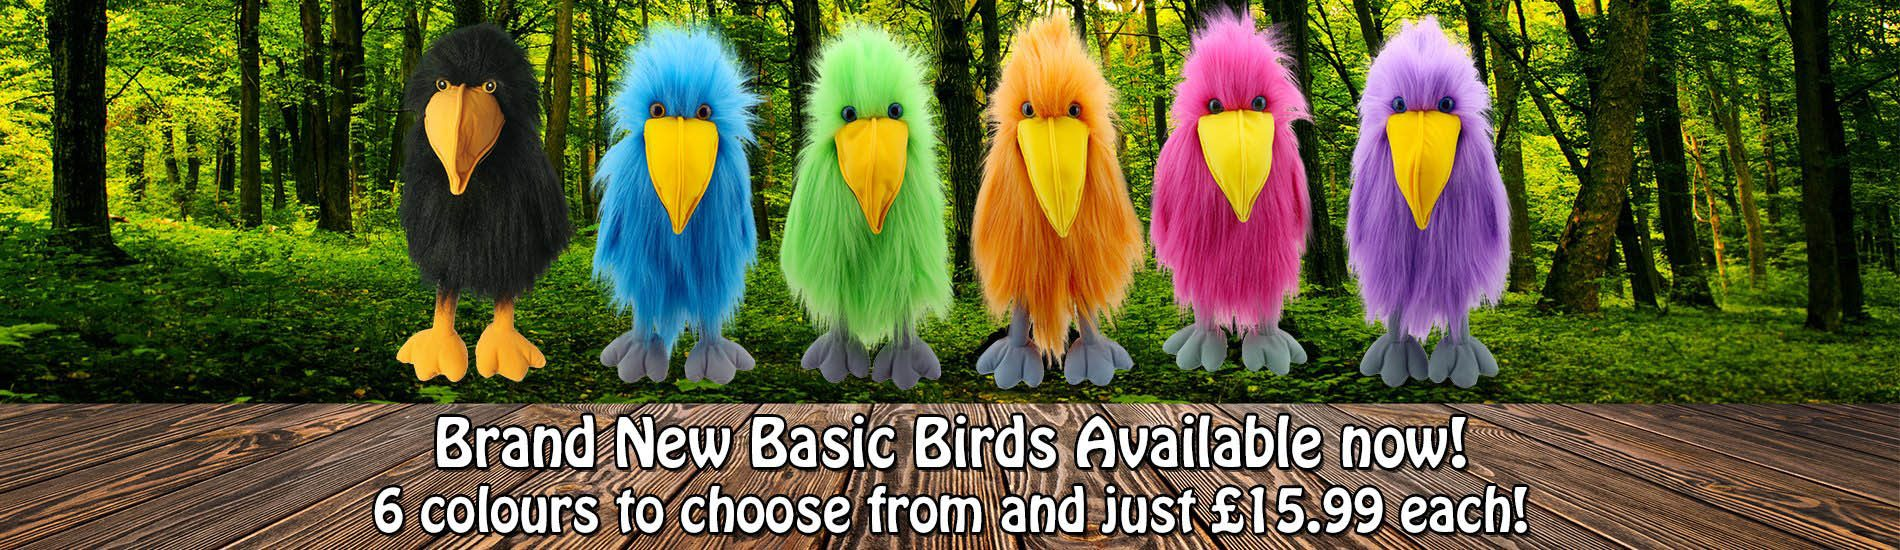 Main-Banner-Basic-Birds-New